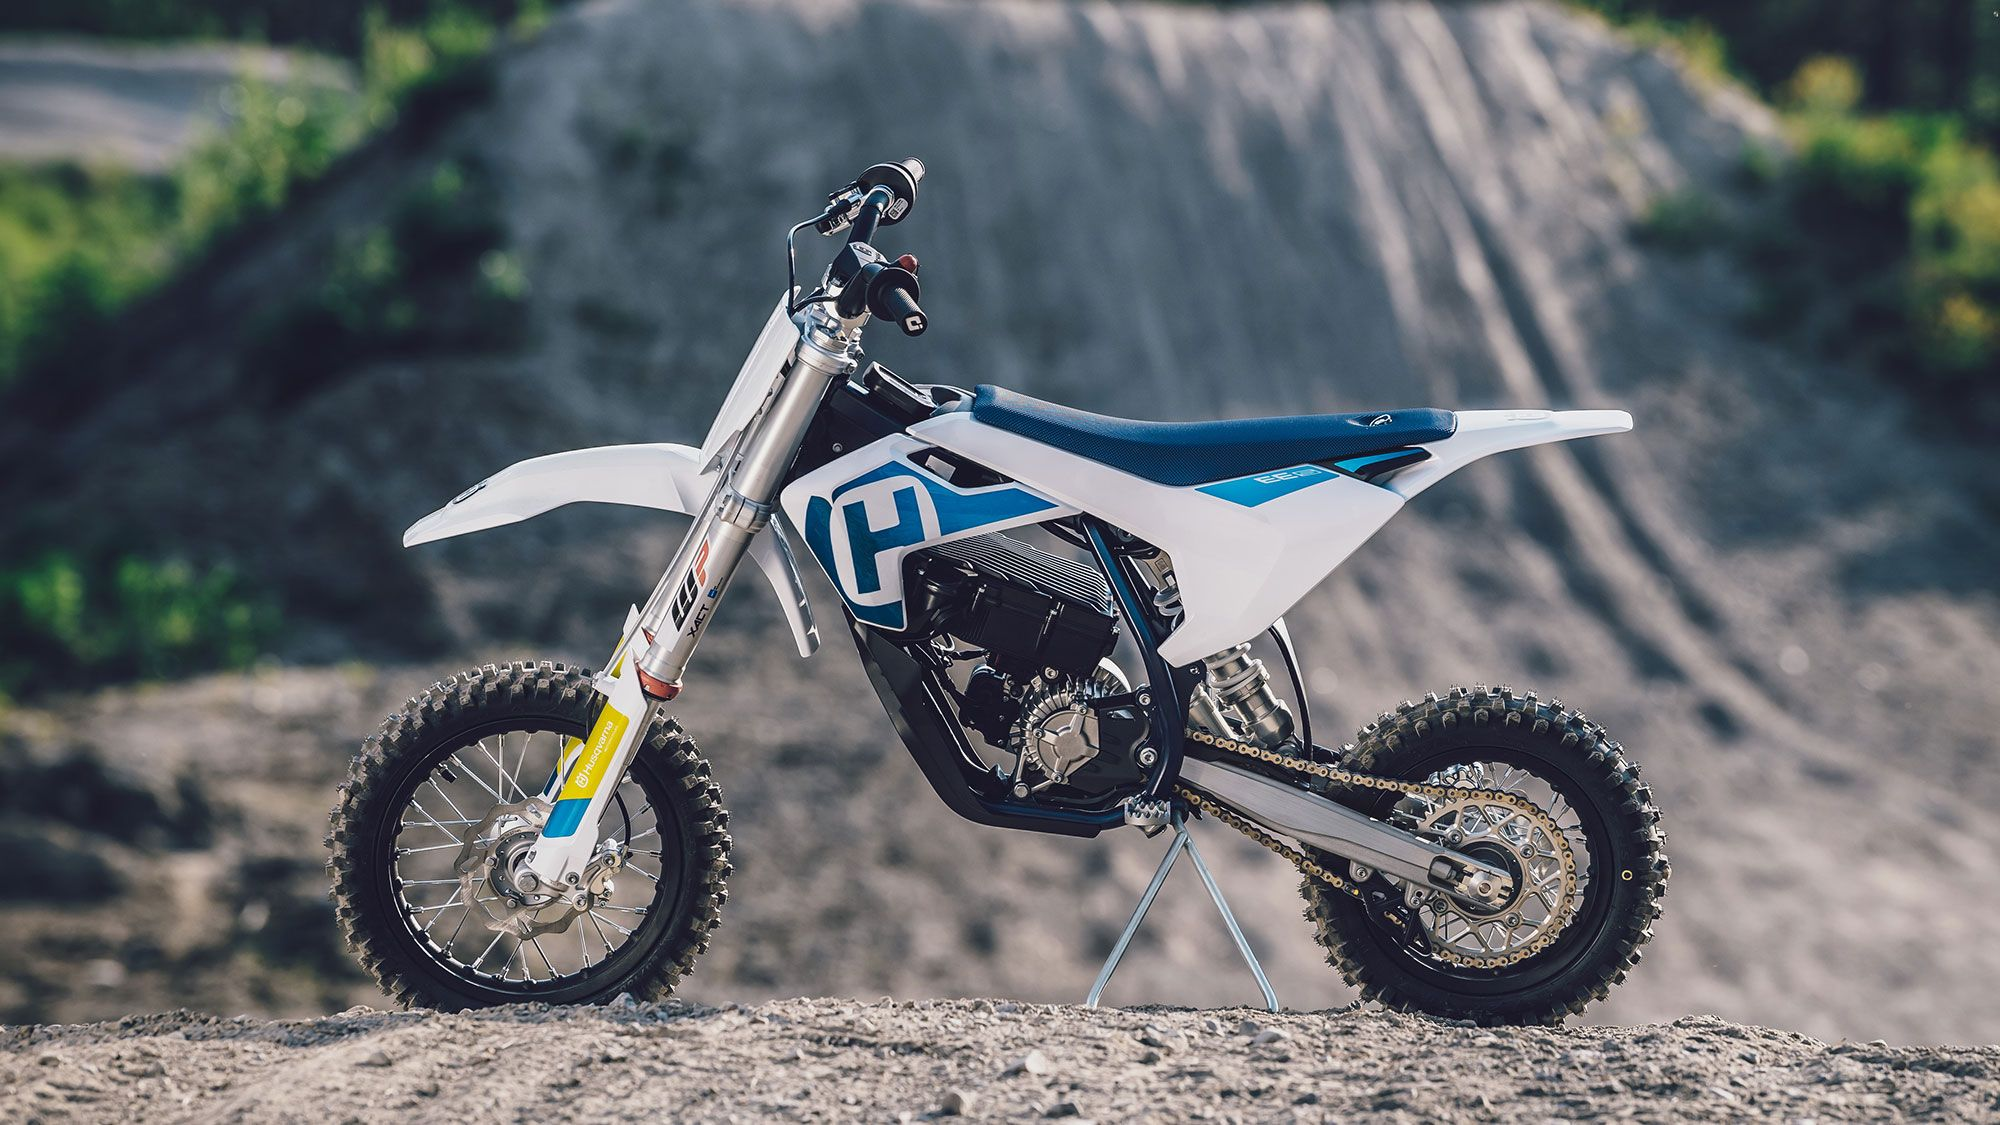 Husqvarna Motorcycles First Electric Motorcycle Is Not For The